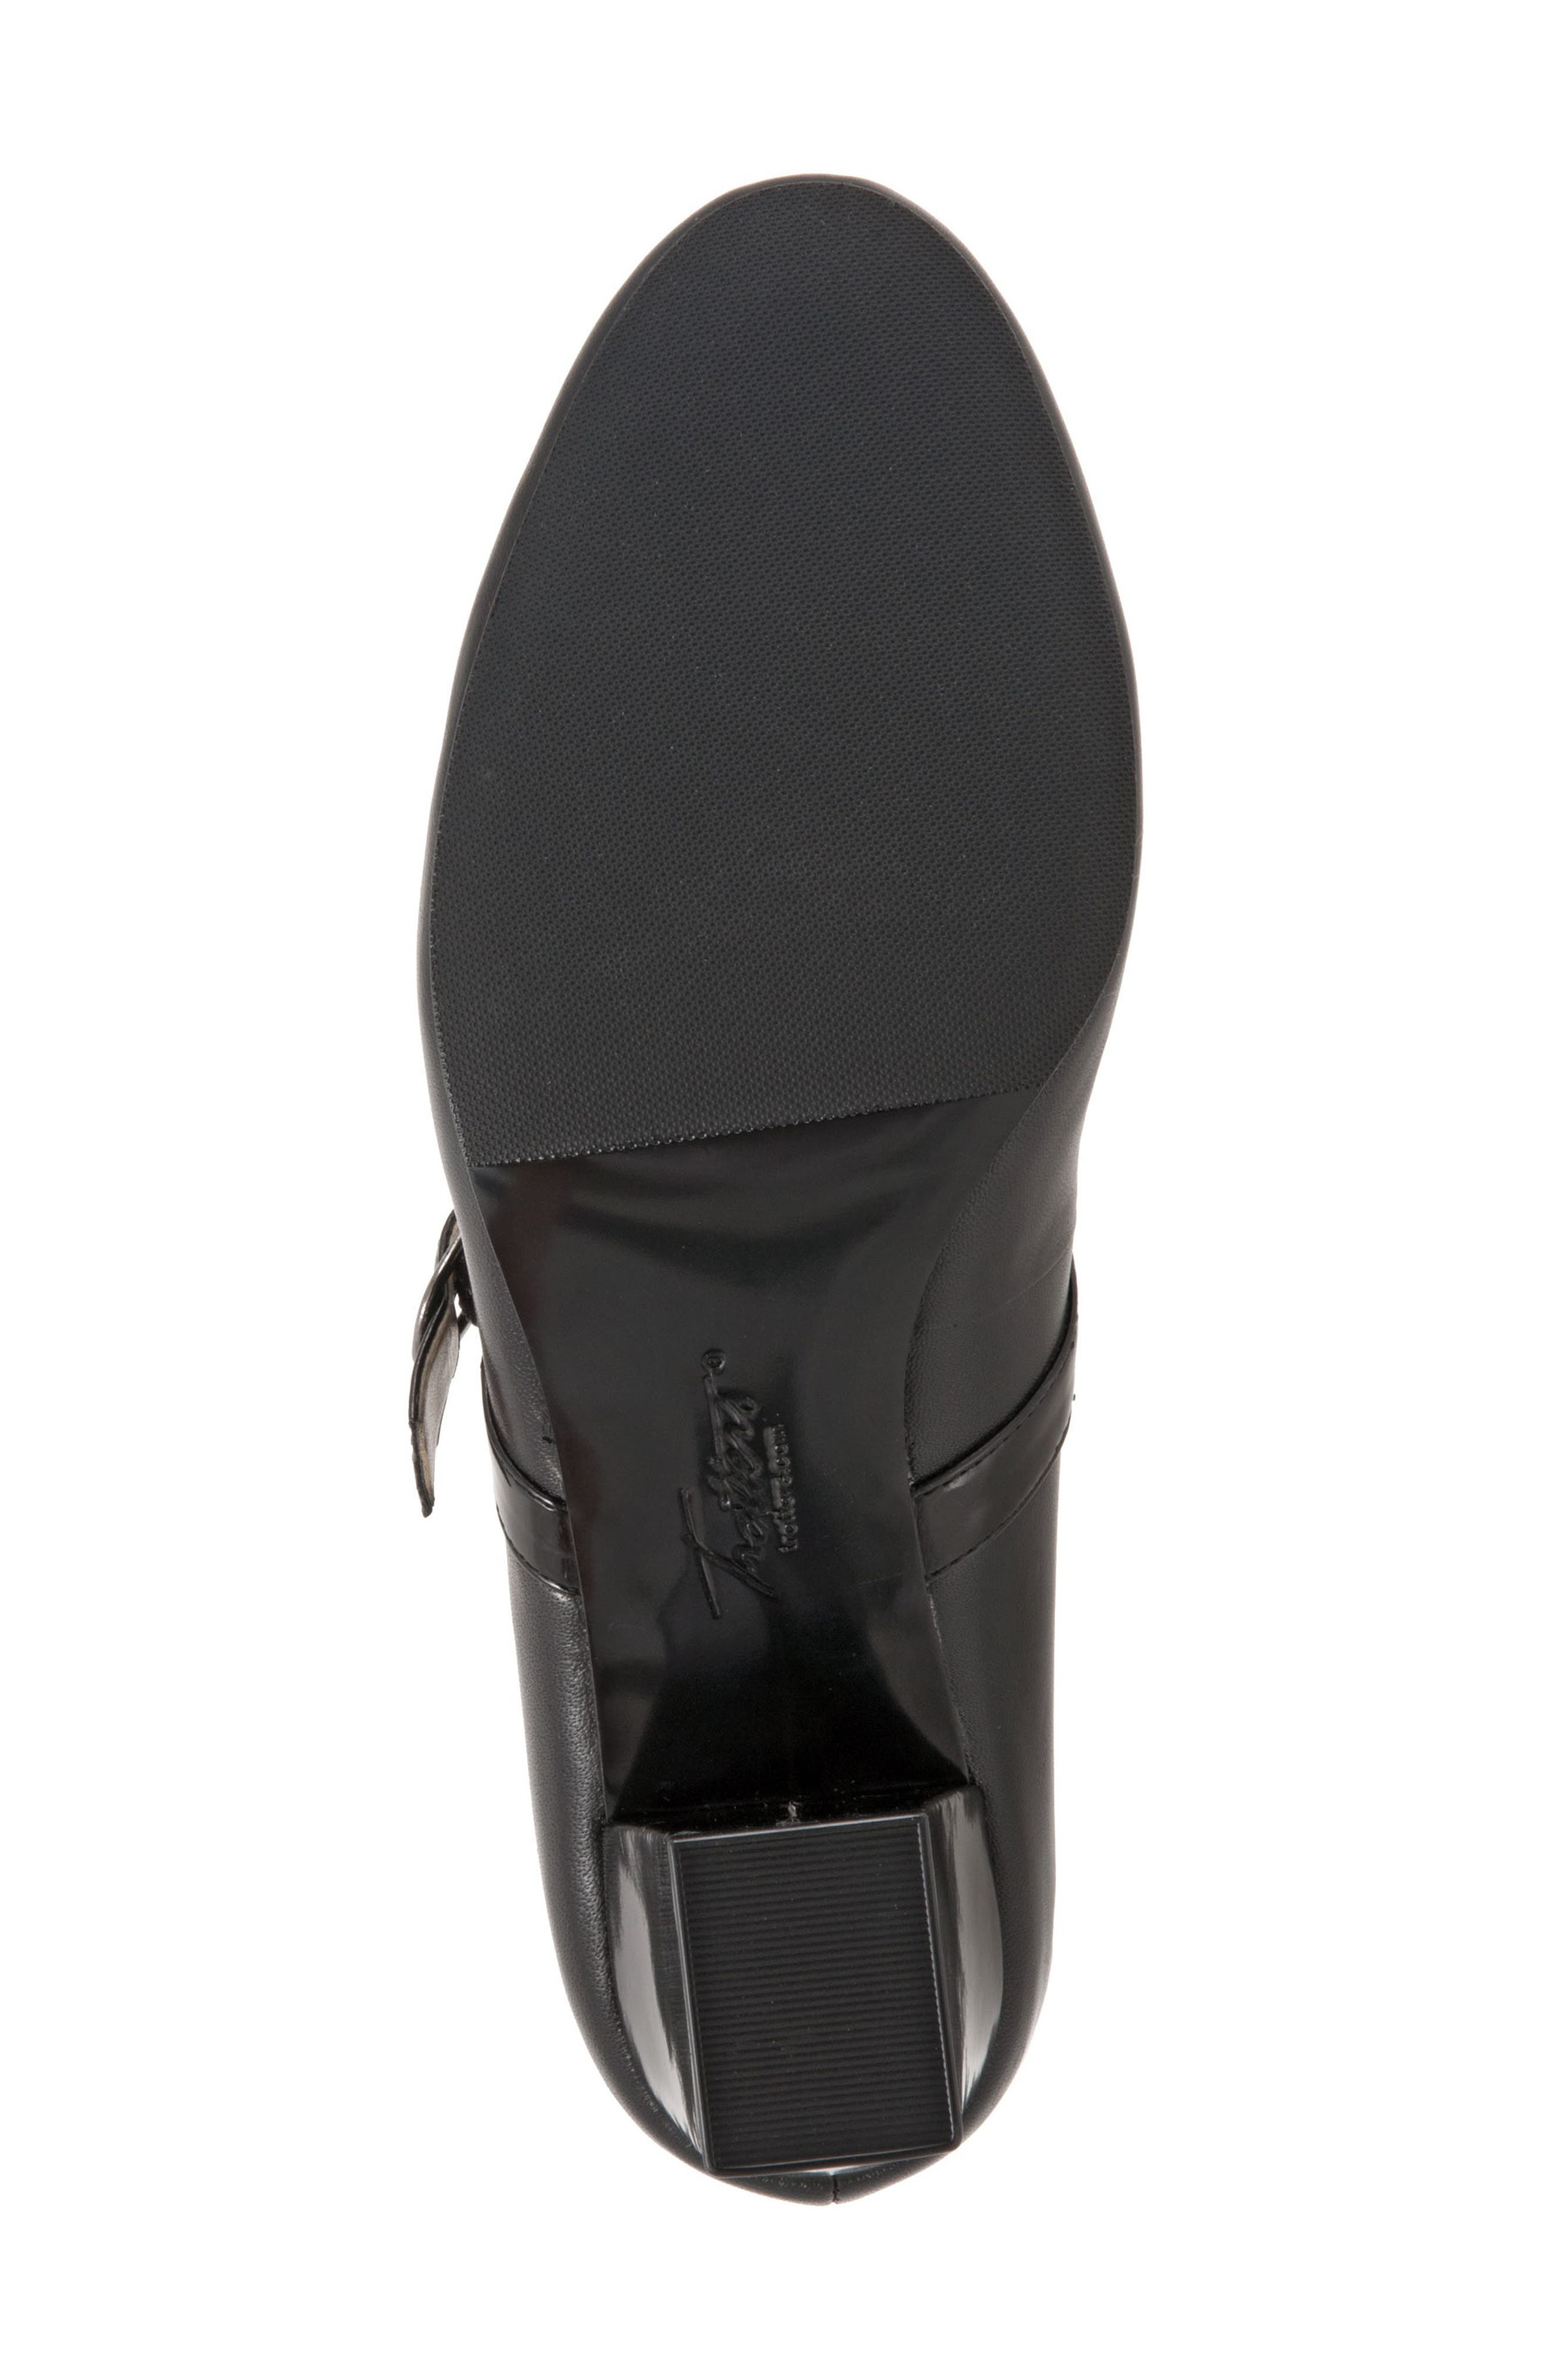 TROTTERS, 'Candice' Mary Jane Pump, Alternate thumbnail 3, color, BLACK LEATHER